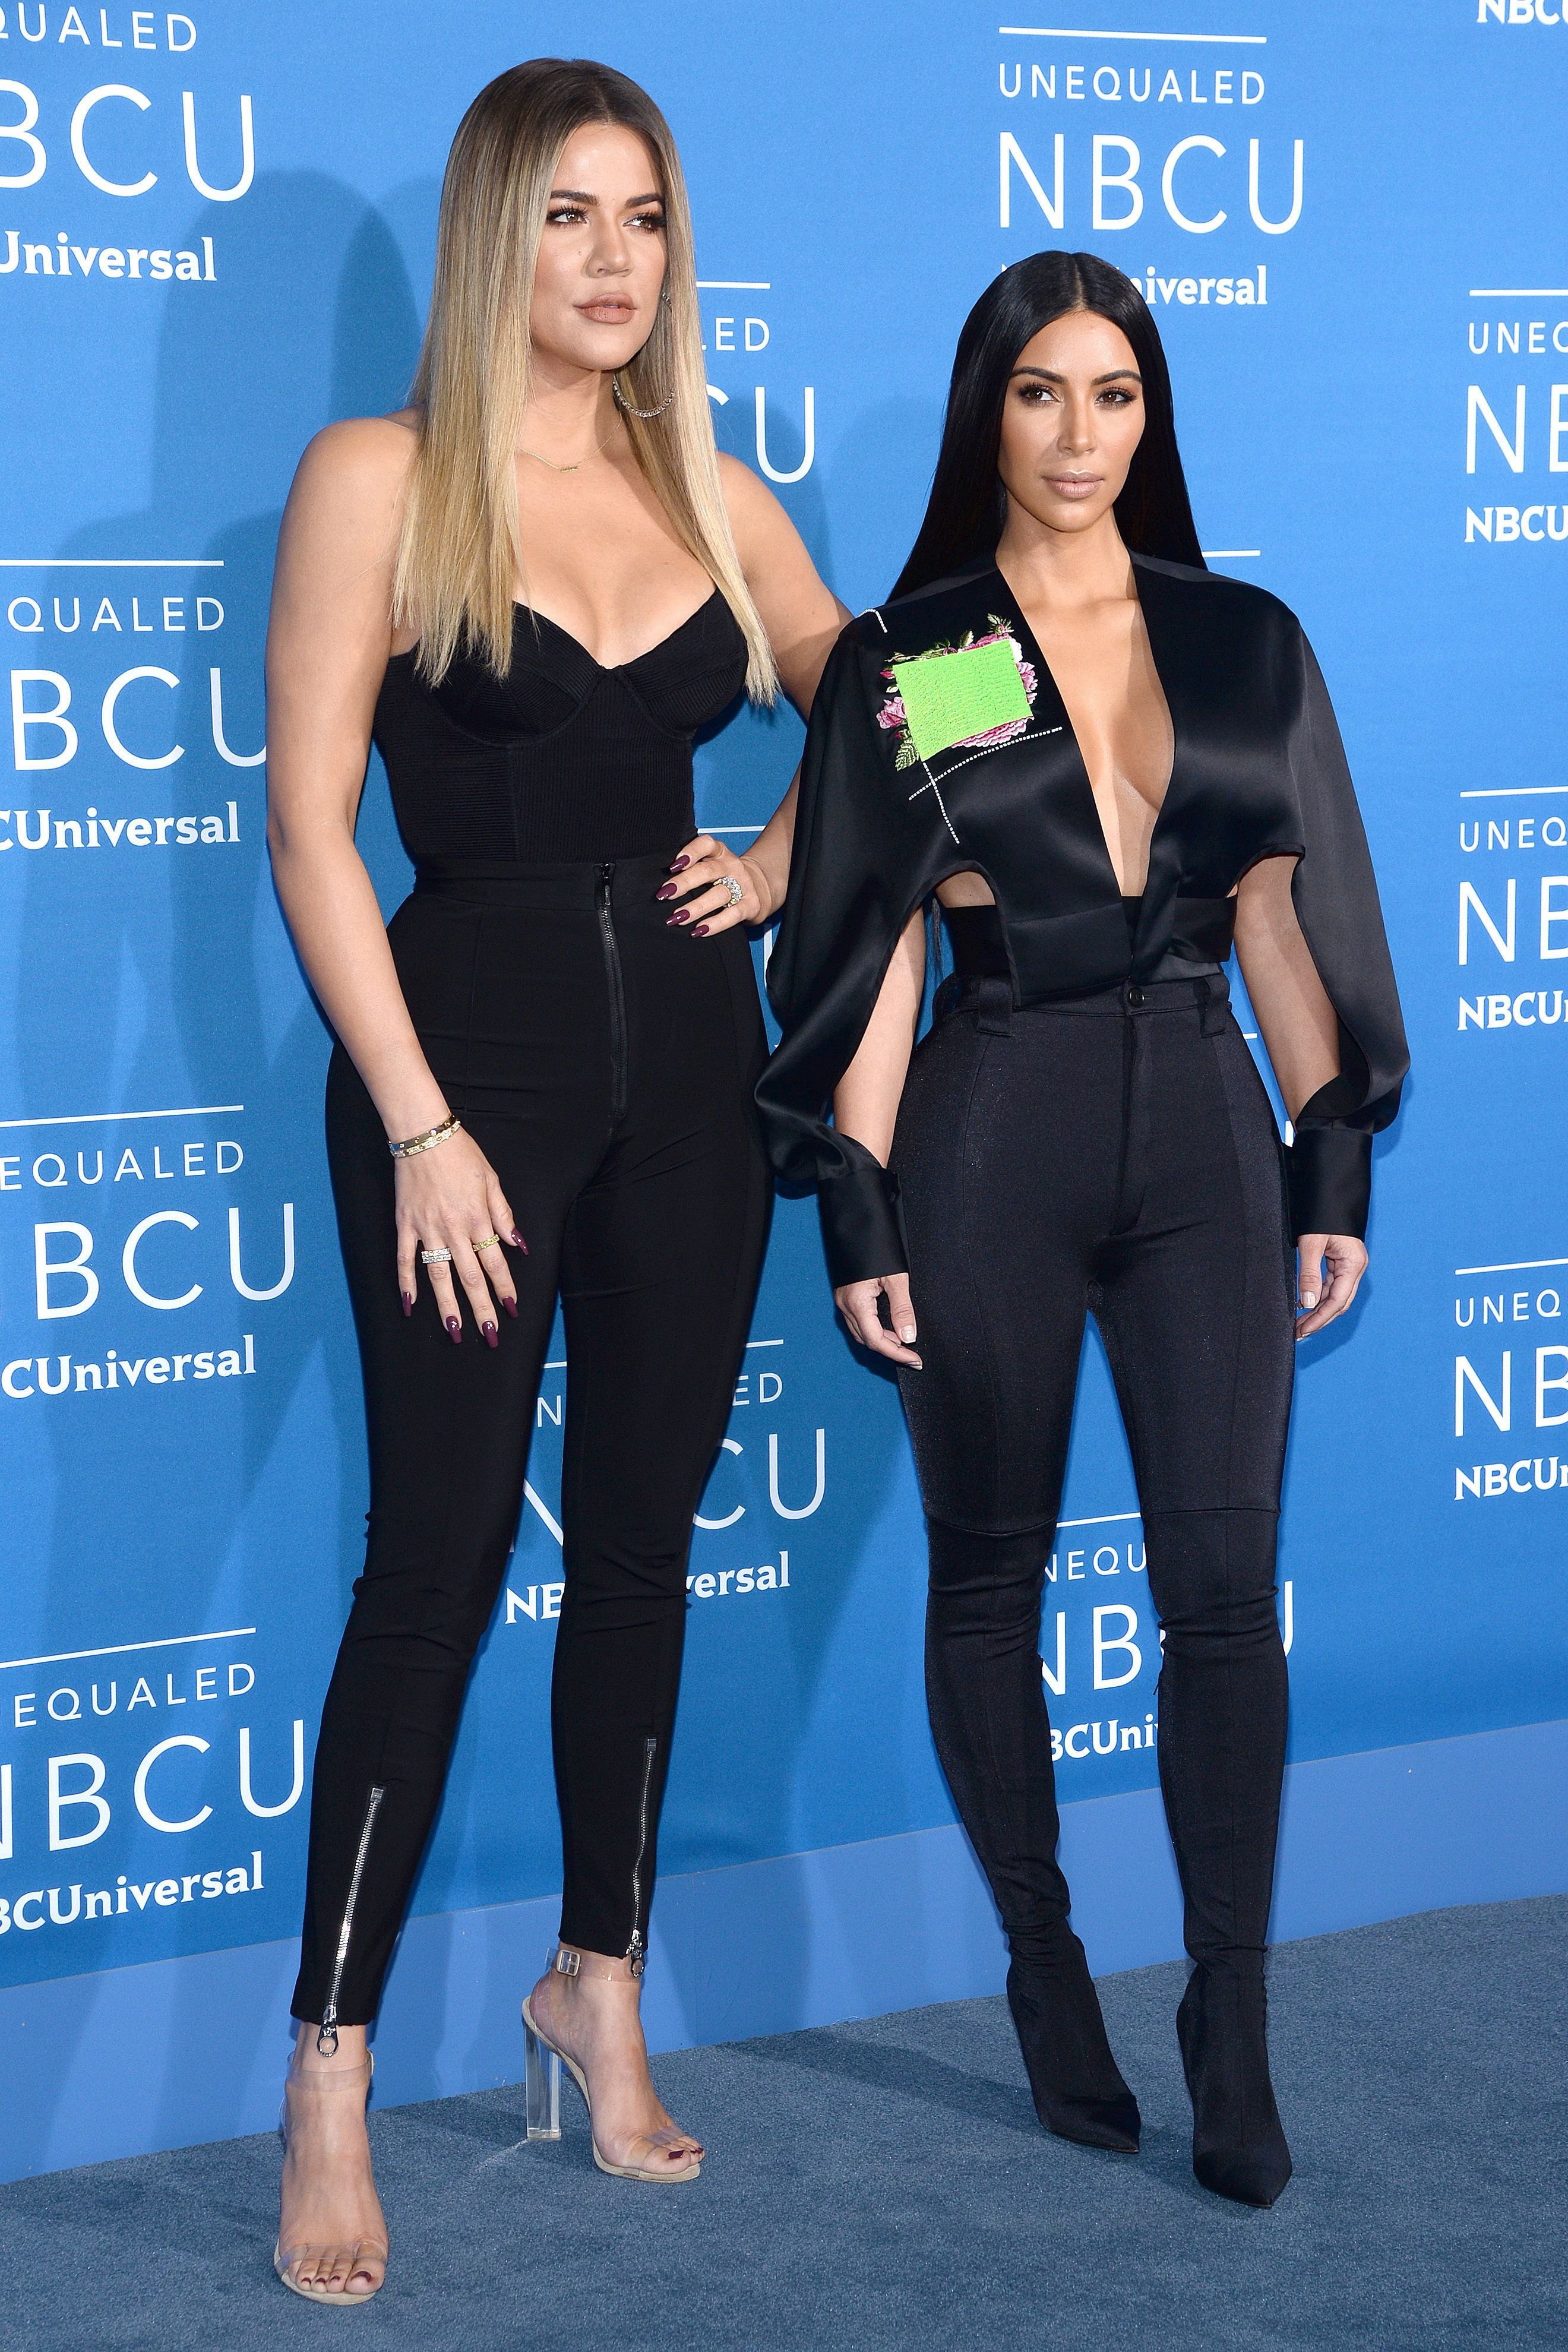 Khloe and Kim Kardashian attend the NBCUniversal upfront event in New York City in May 2017. Kim defended her younger si